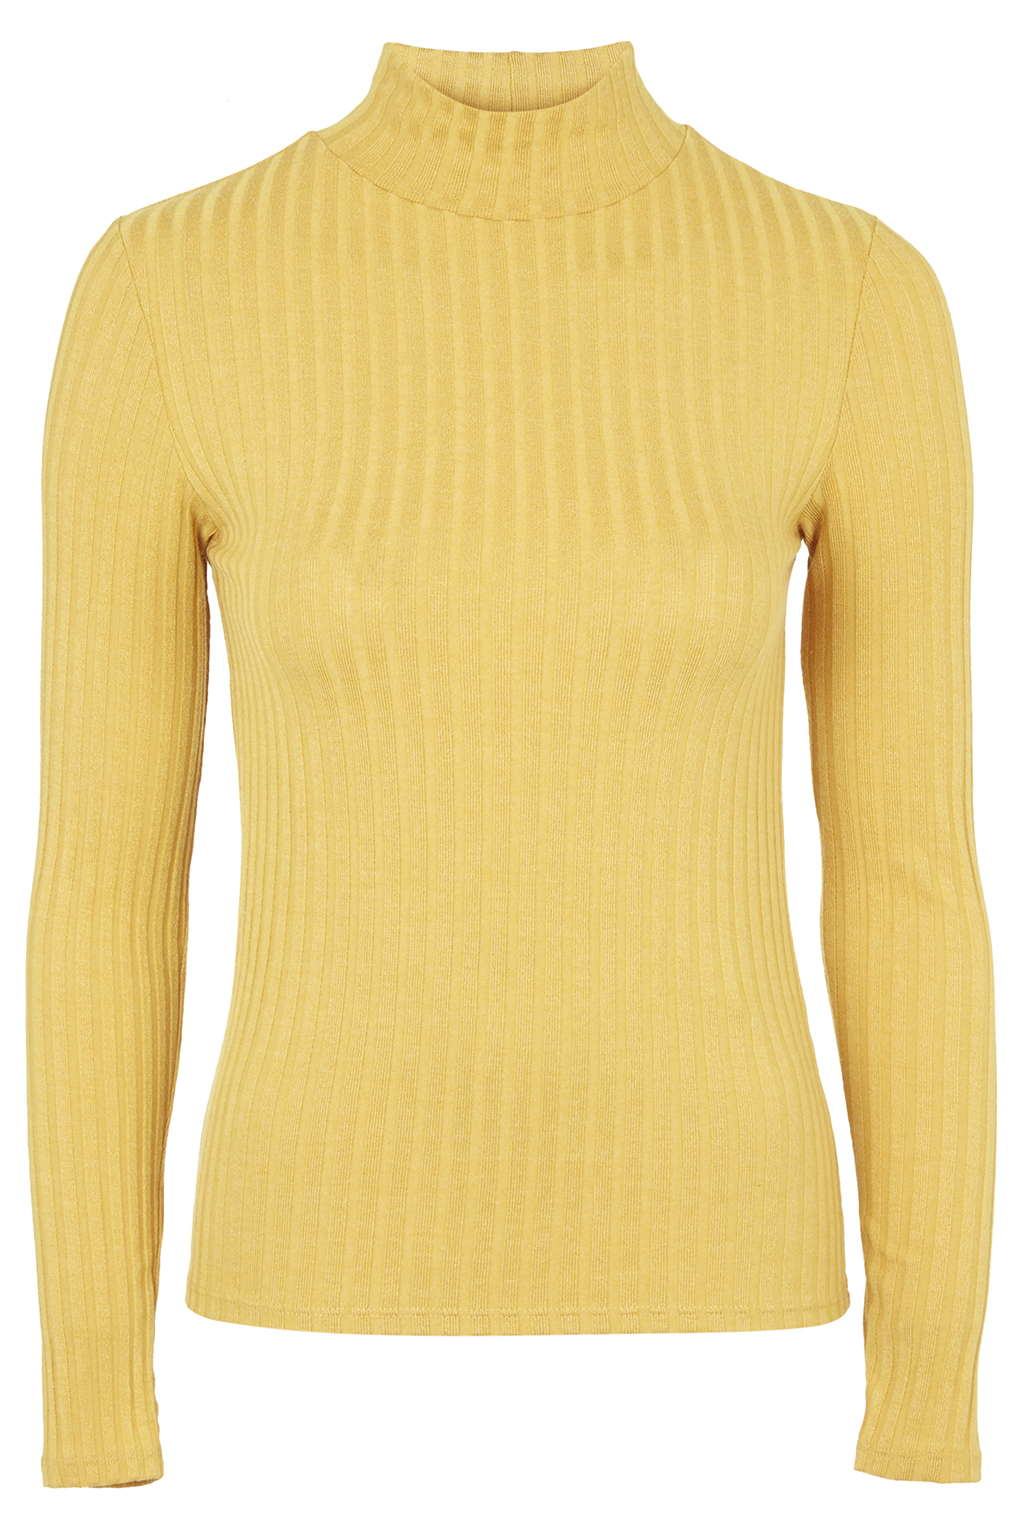 Ribbed Funnel Neck Top - Tops - Clothing